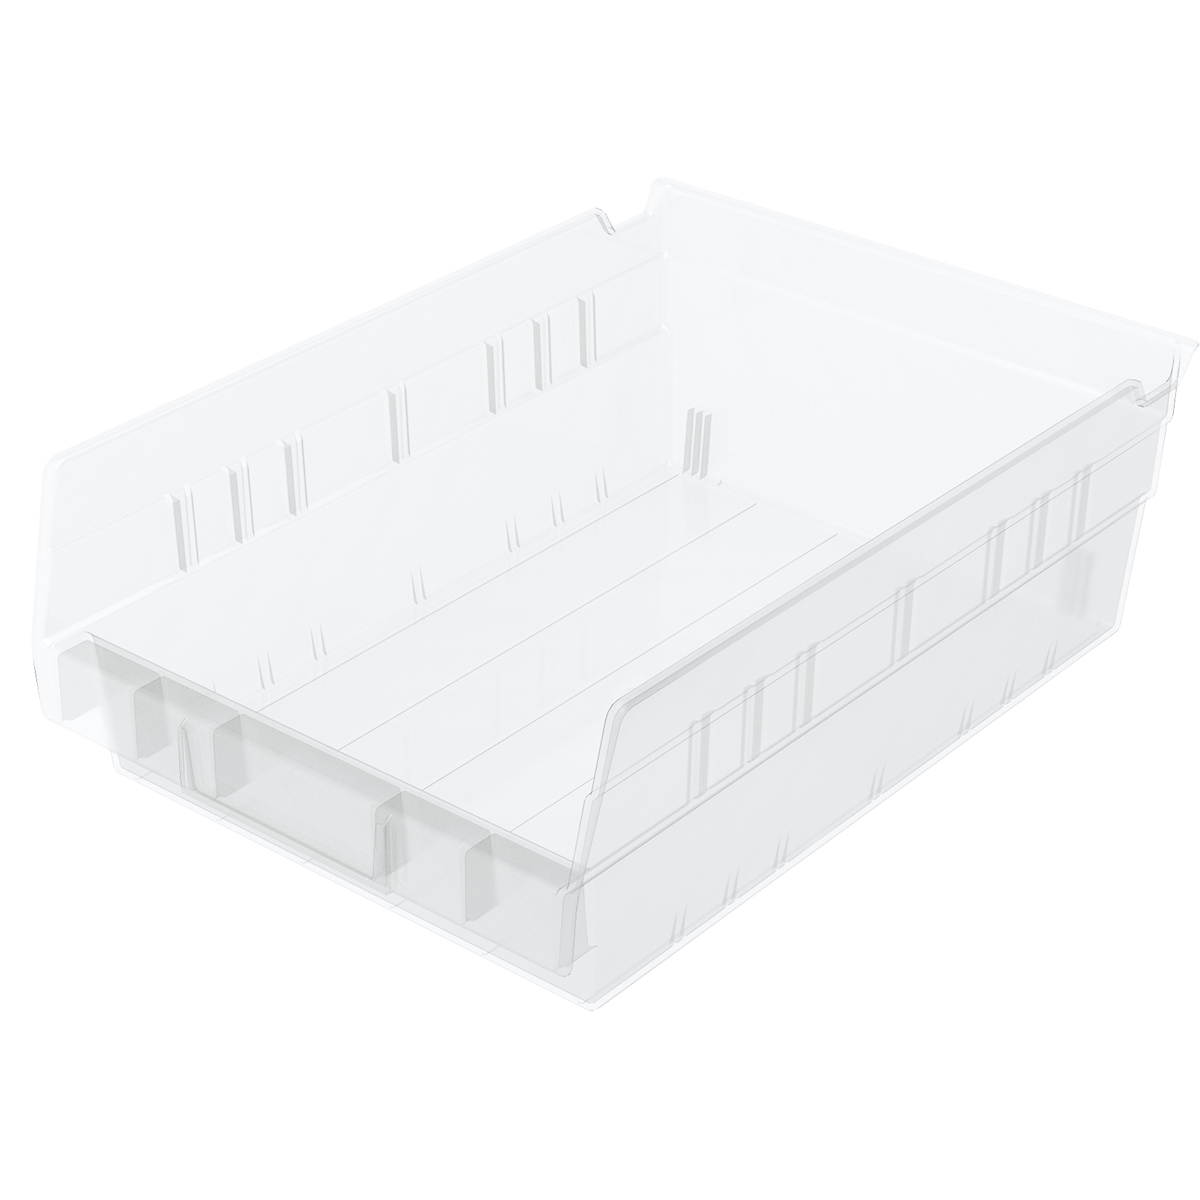 Shelf Bin 11-5/8 x 8-3/8 x 4, Clear (30150SCLAR).  This item sold in carton quantities of 12.